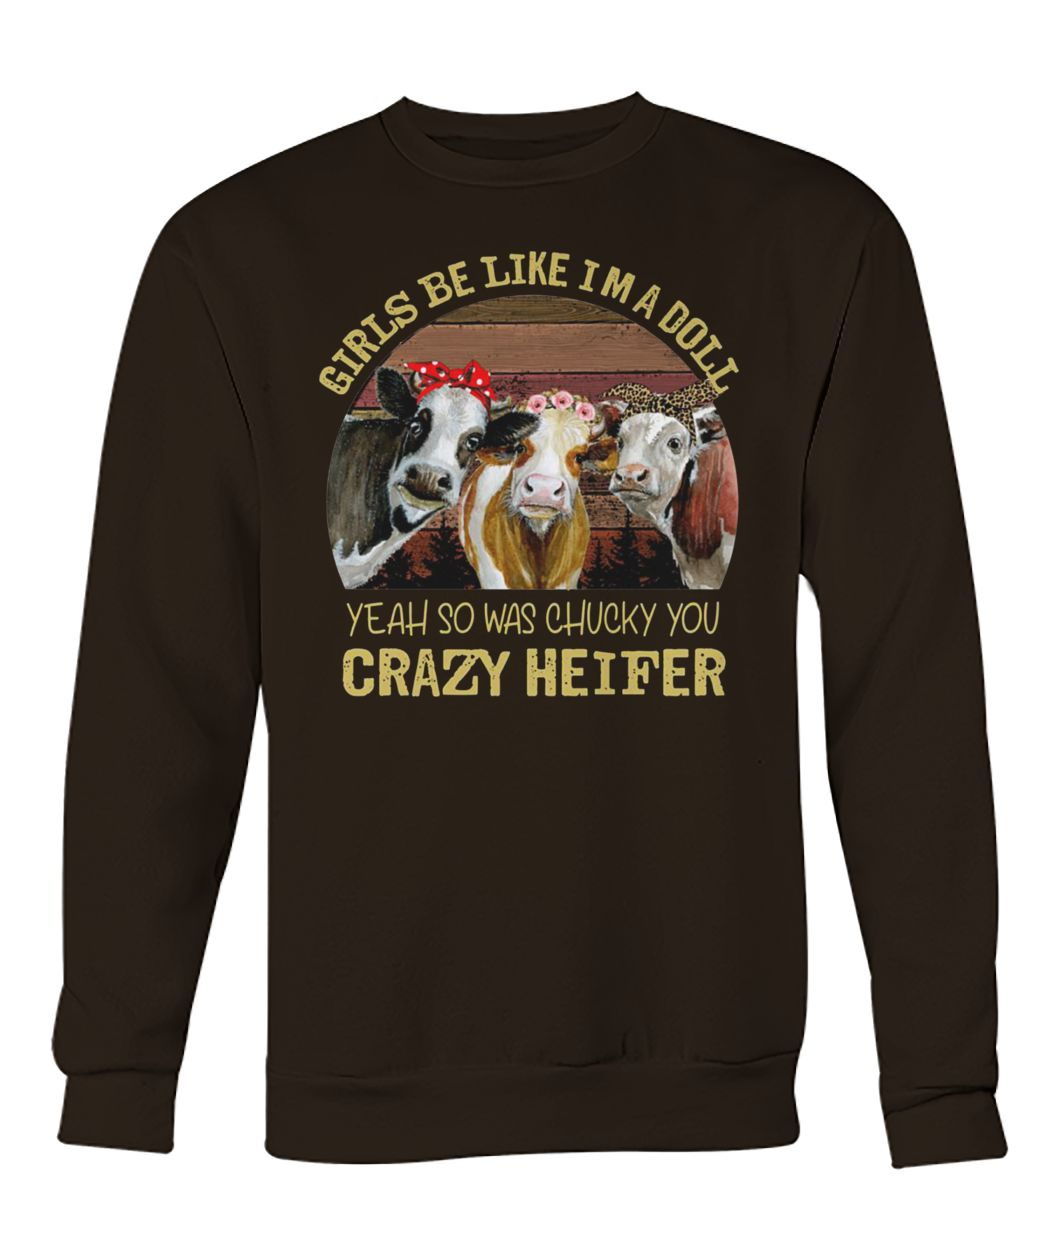 Girls be like I'm a doll yeah so was chucky you crazy heifer crew neck sweatshirt